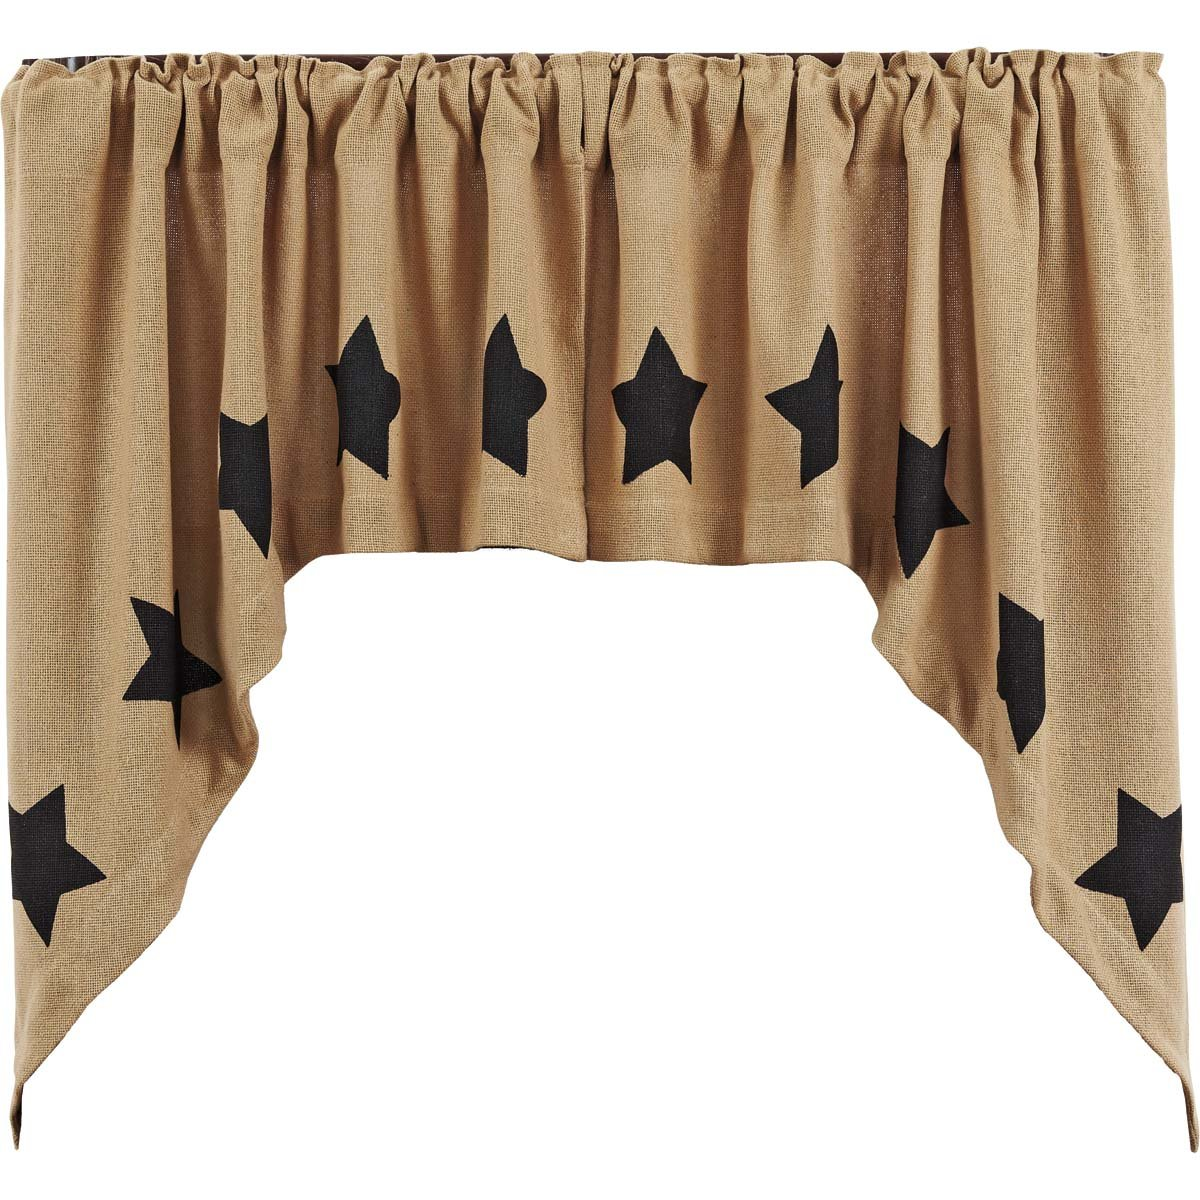 VHC Brands Burlap Natural Swag Black Stencil Stars Set of 2-36x36x16